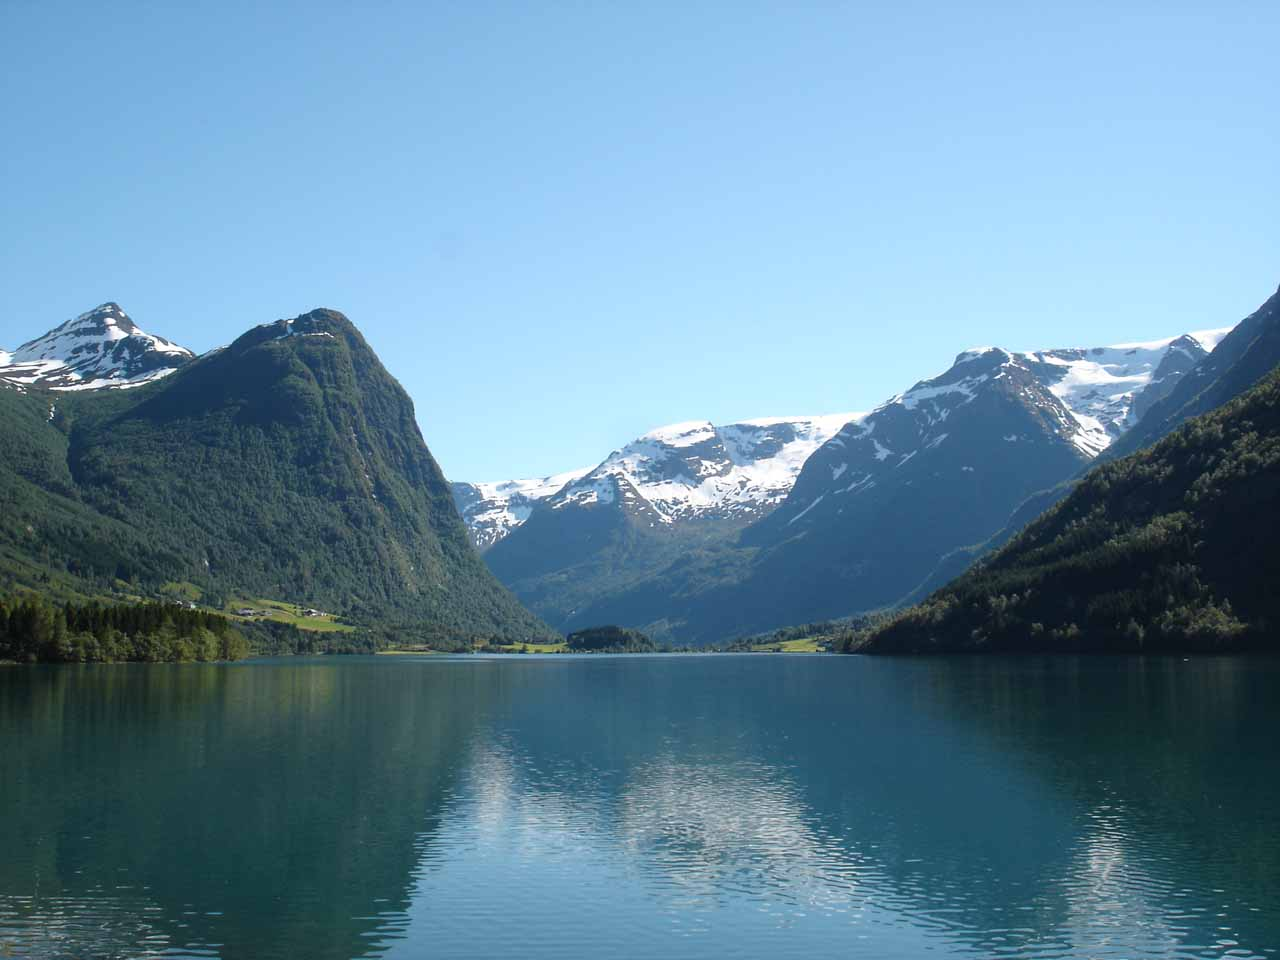 In addition to Briksdalsbreen, the drive through Oldedalen was also very scenic and memorable